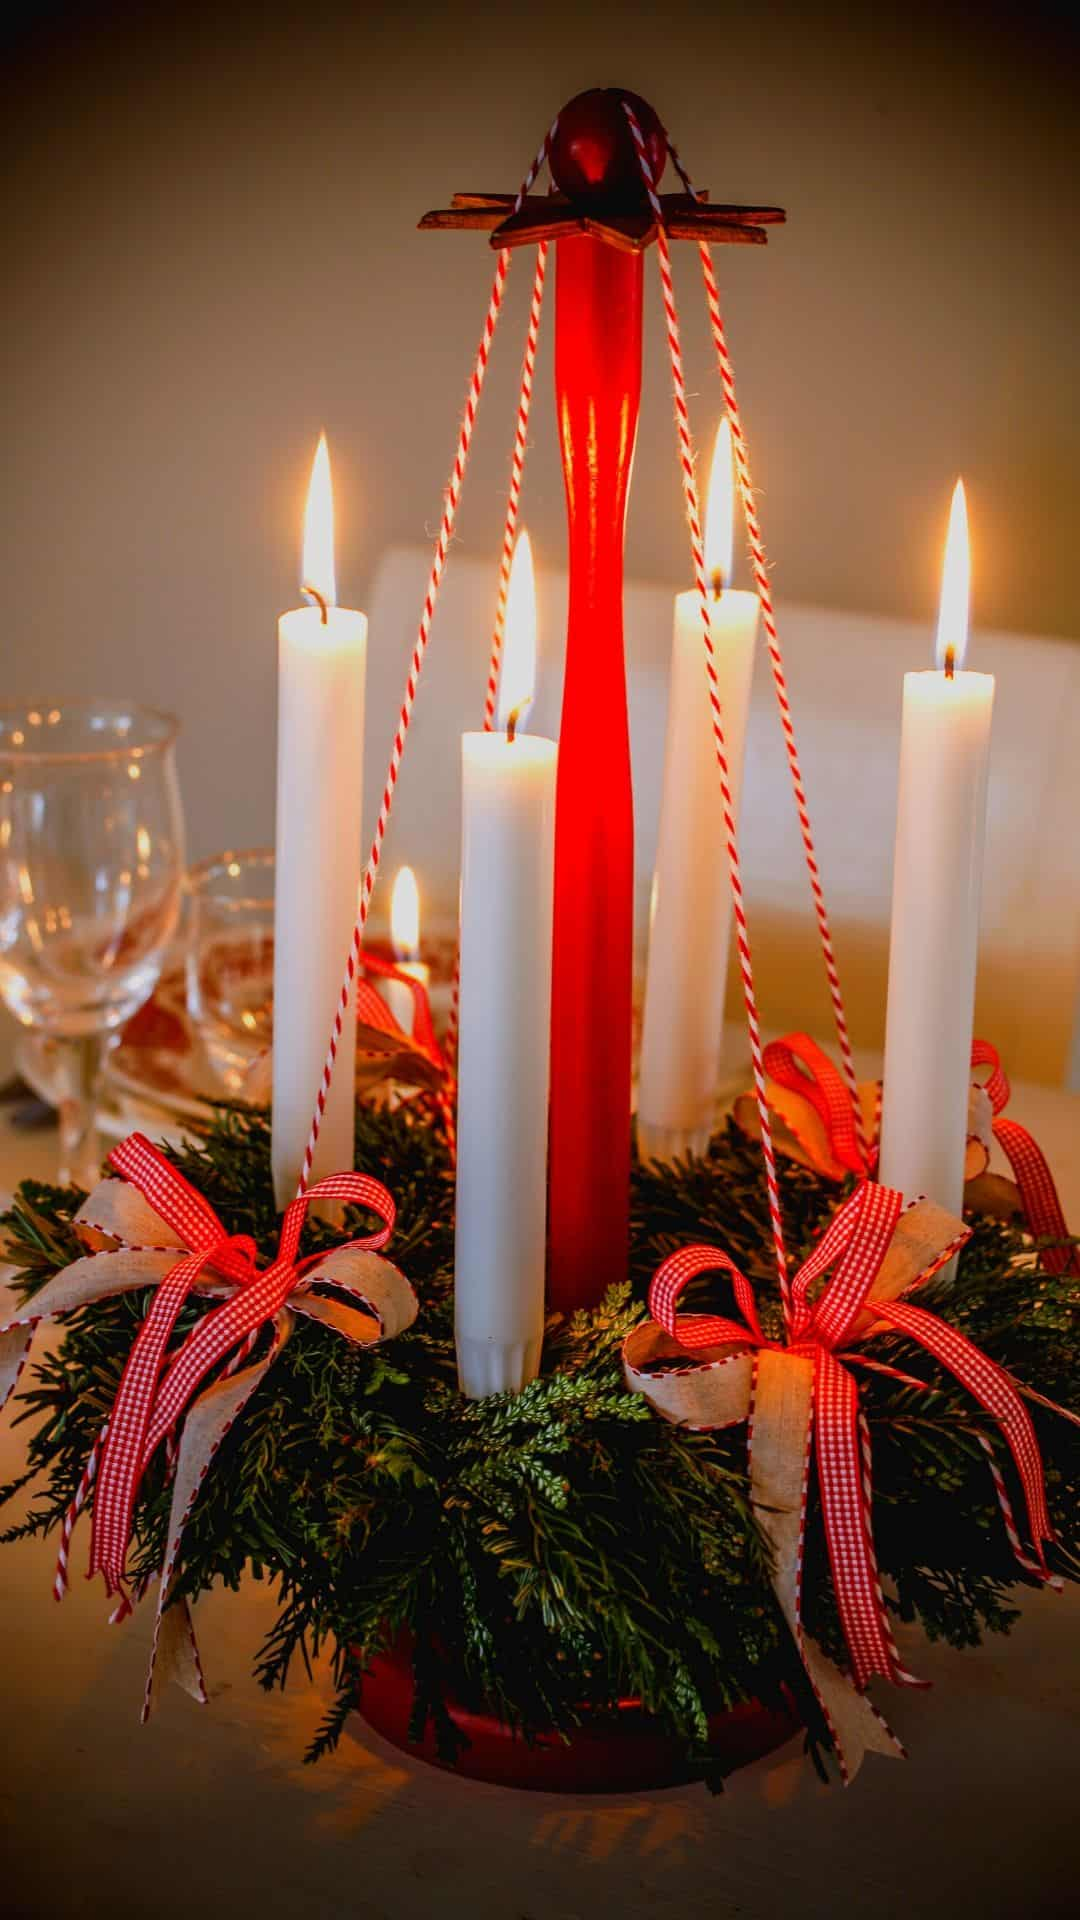 Christmas Wallpapers For iPhone Holiday Candles